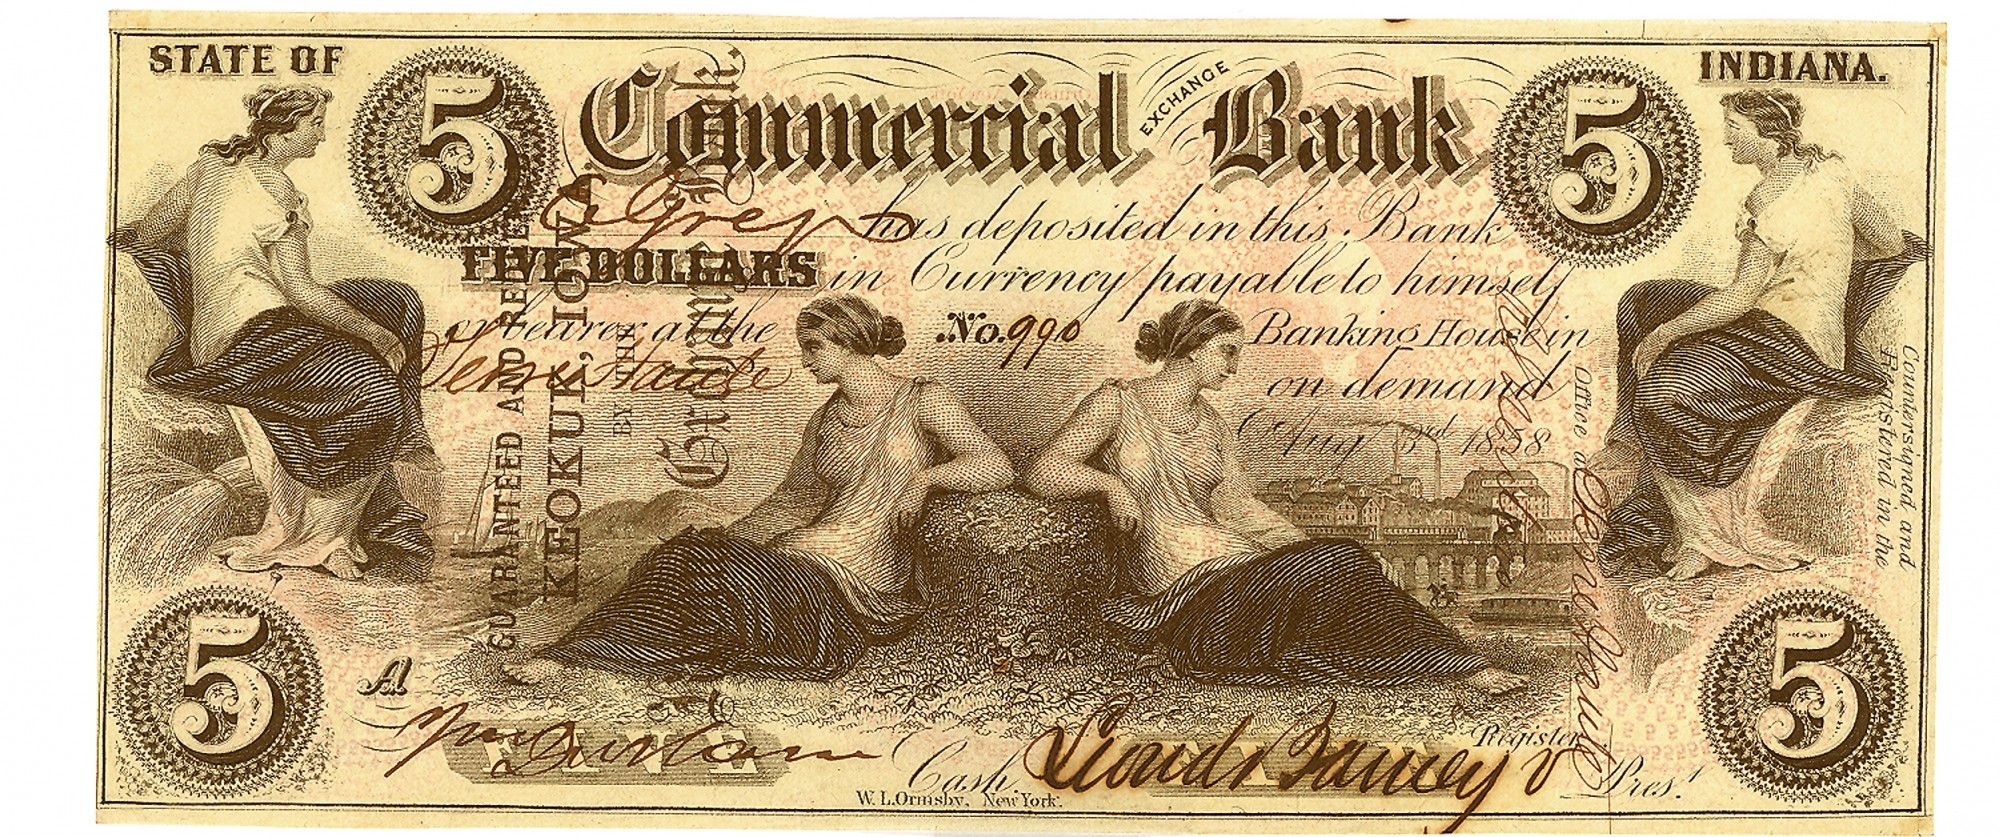 COMMERCIAL EXCHANGE BANK, INDIANA $5 NOTE